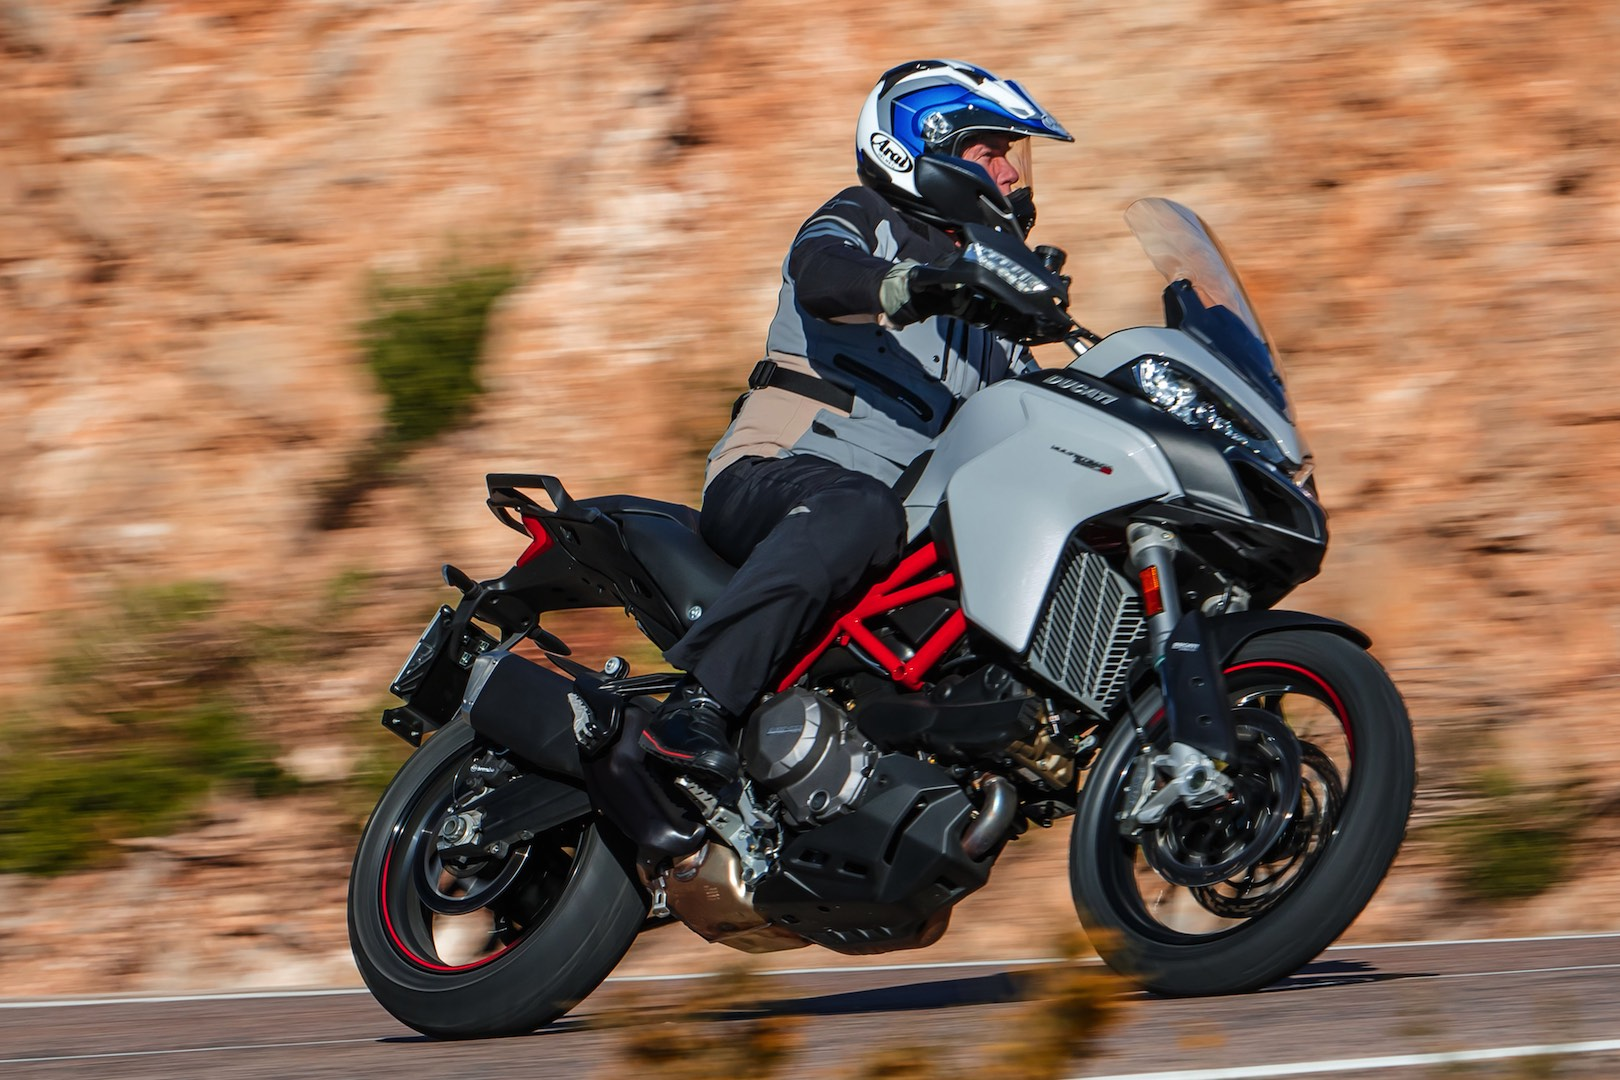 2019 Ducati Multistrada 950 S Review - 3/4 left action